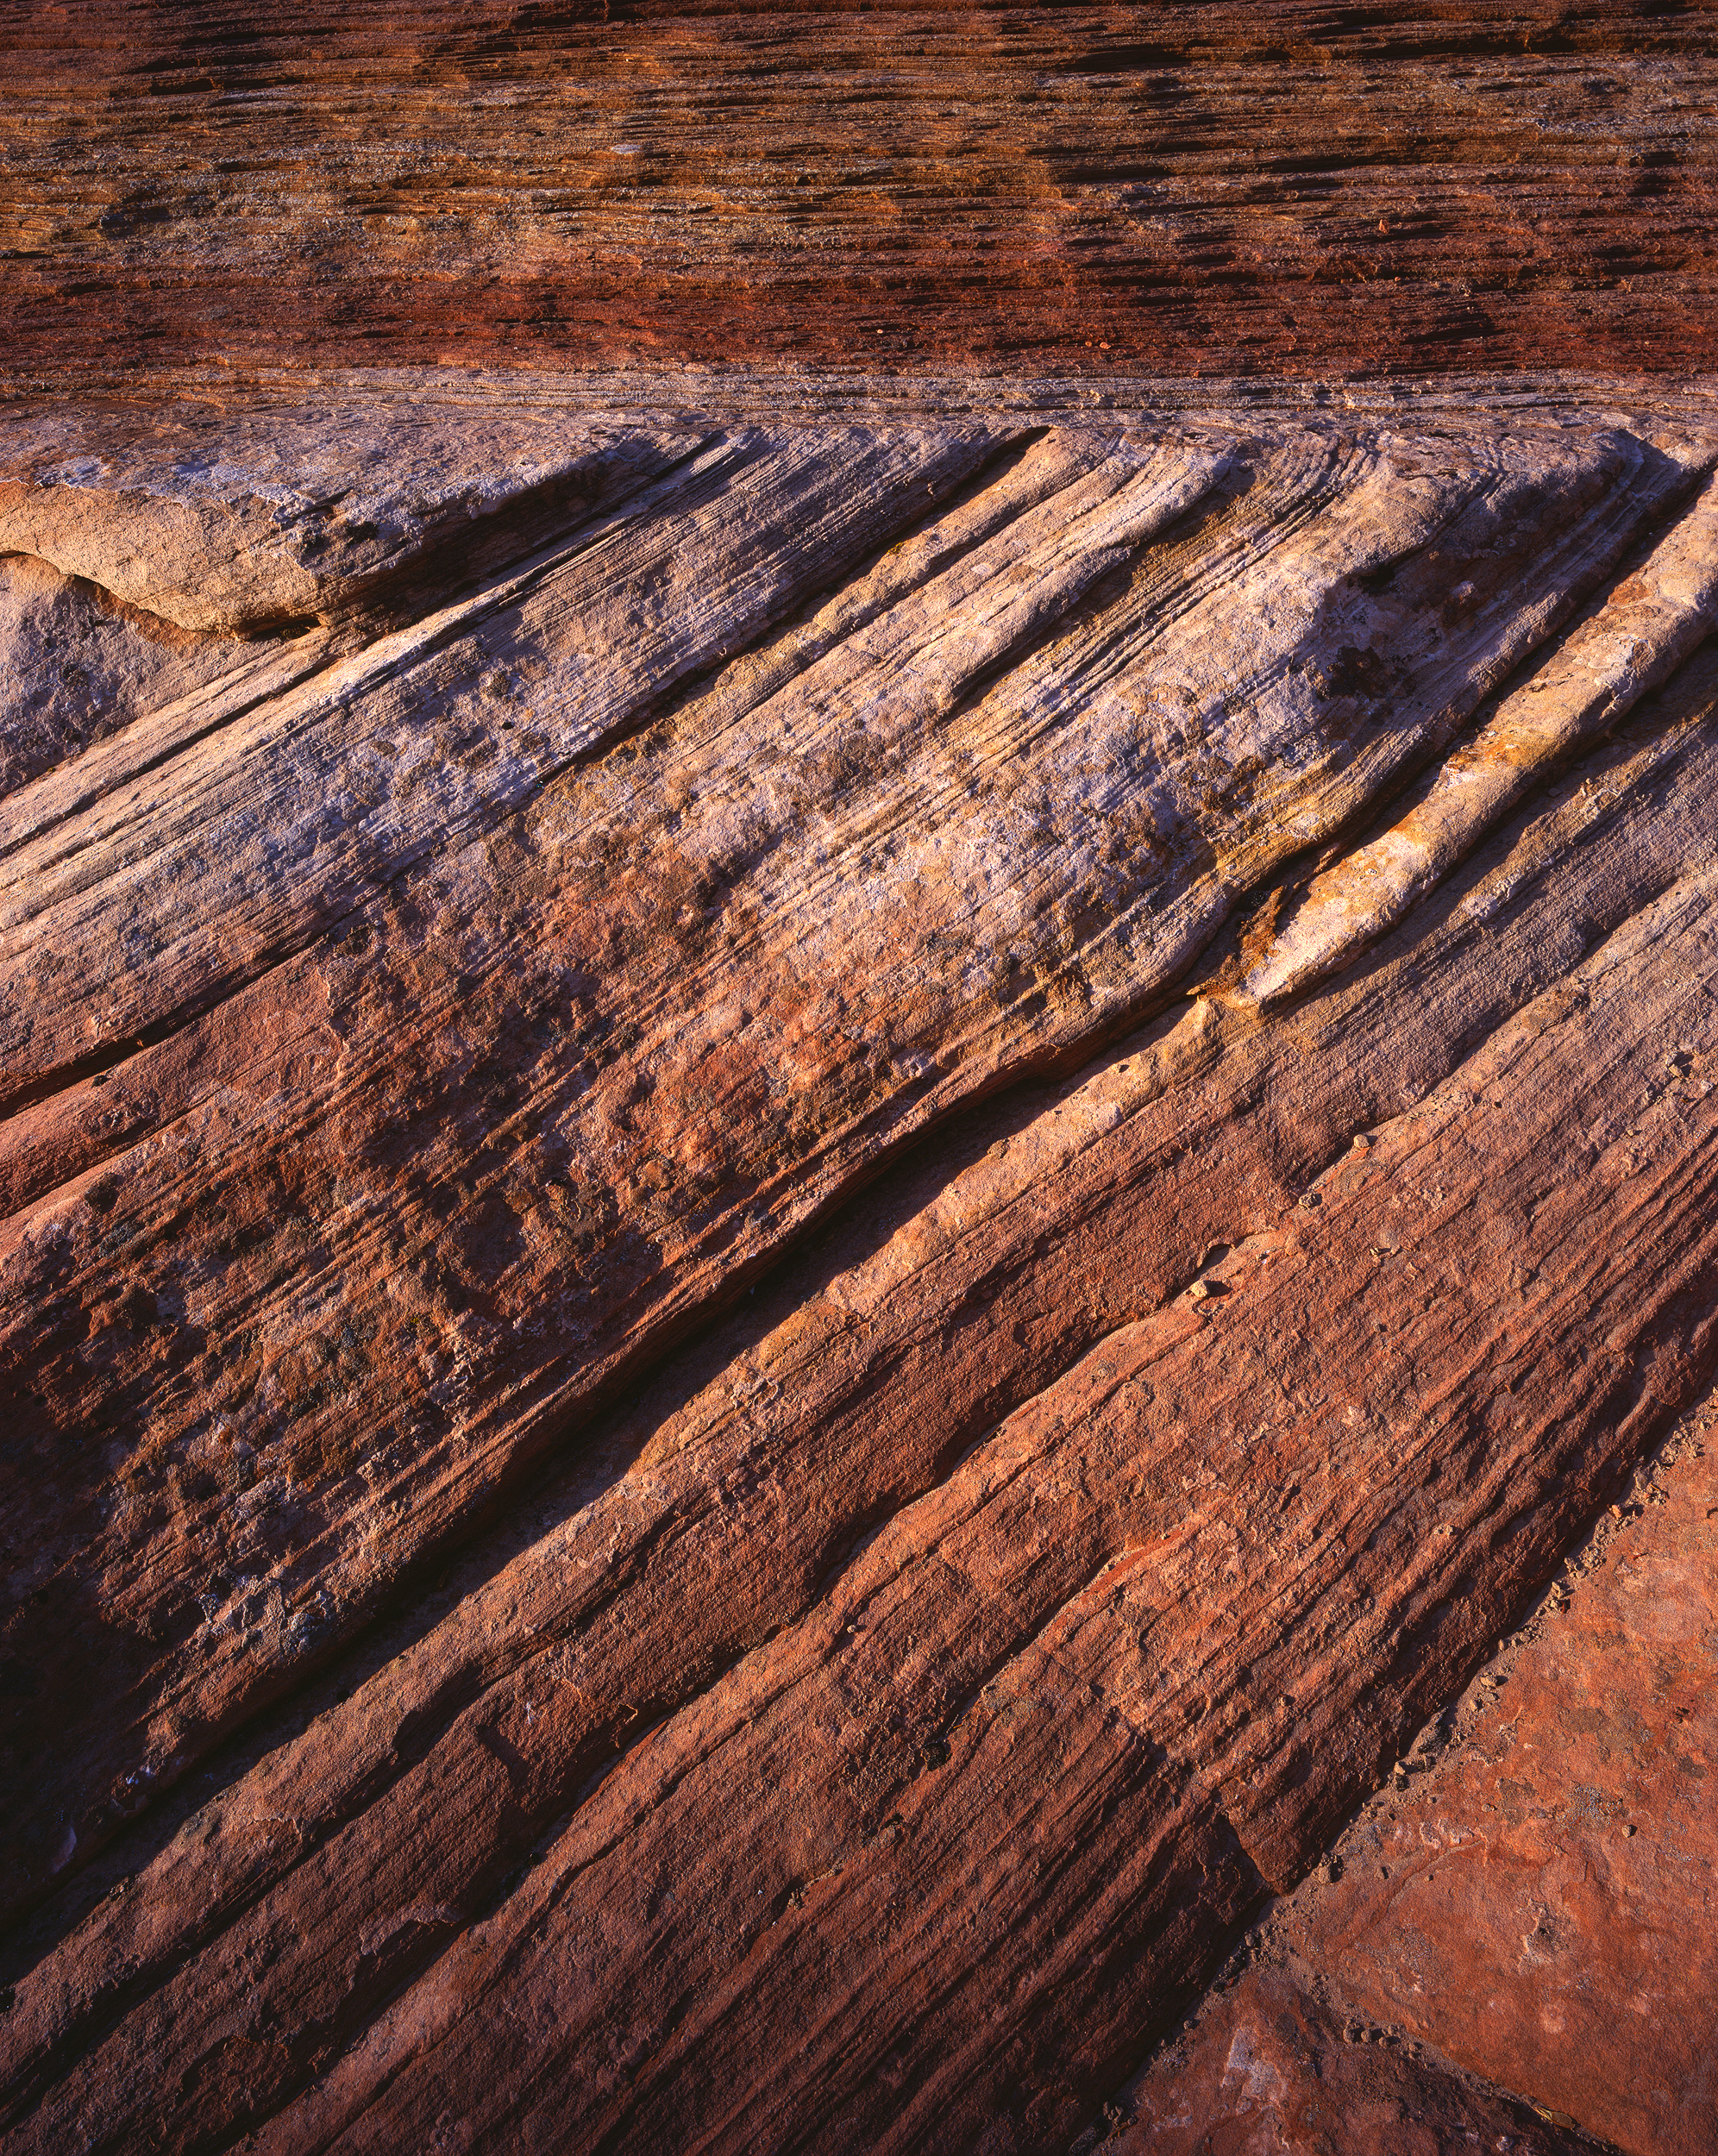 Sandstone Abstract. 4x5 Fuji Velvia 50, f/22, 1s